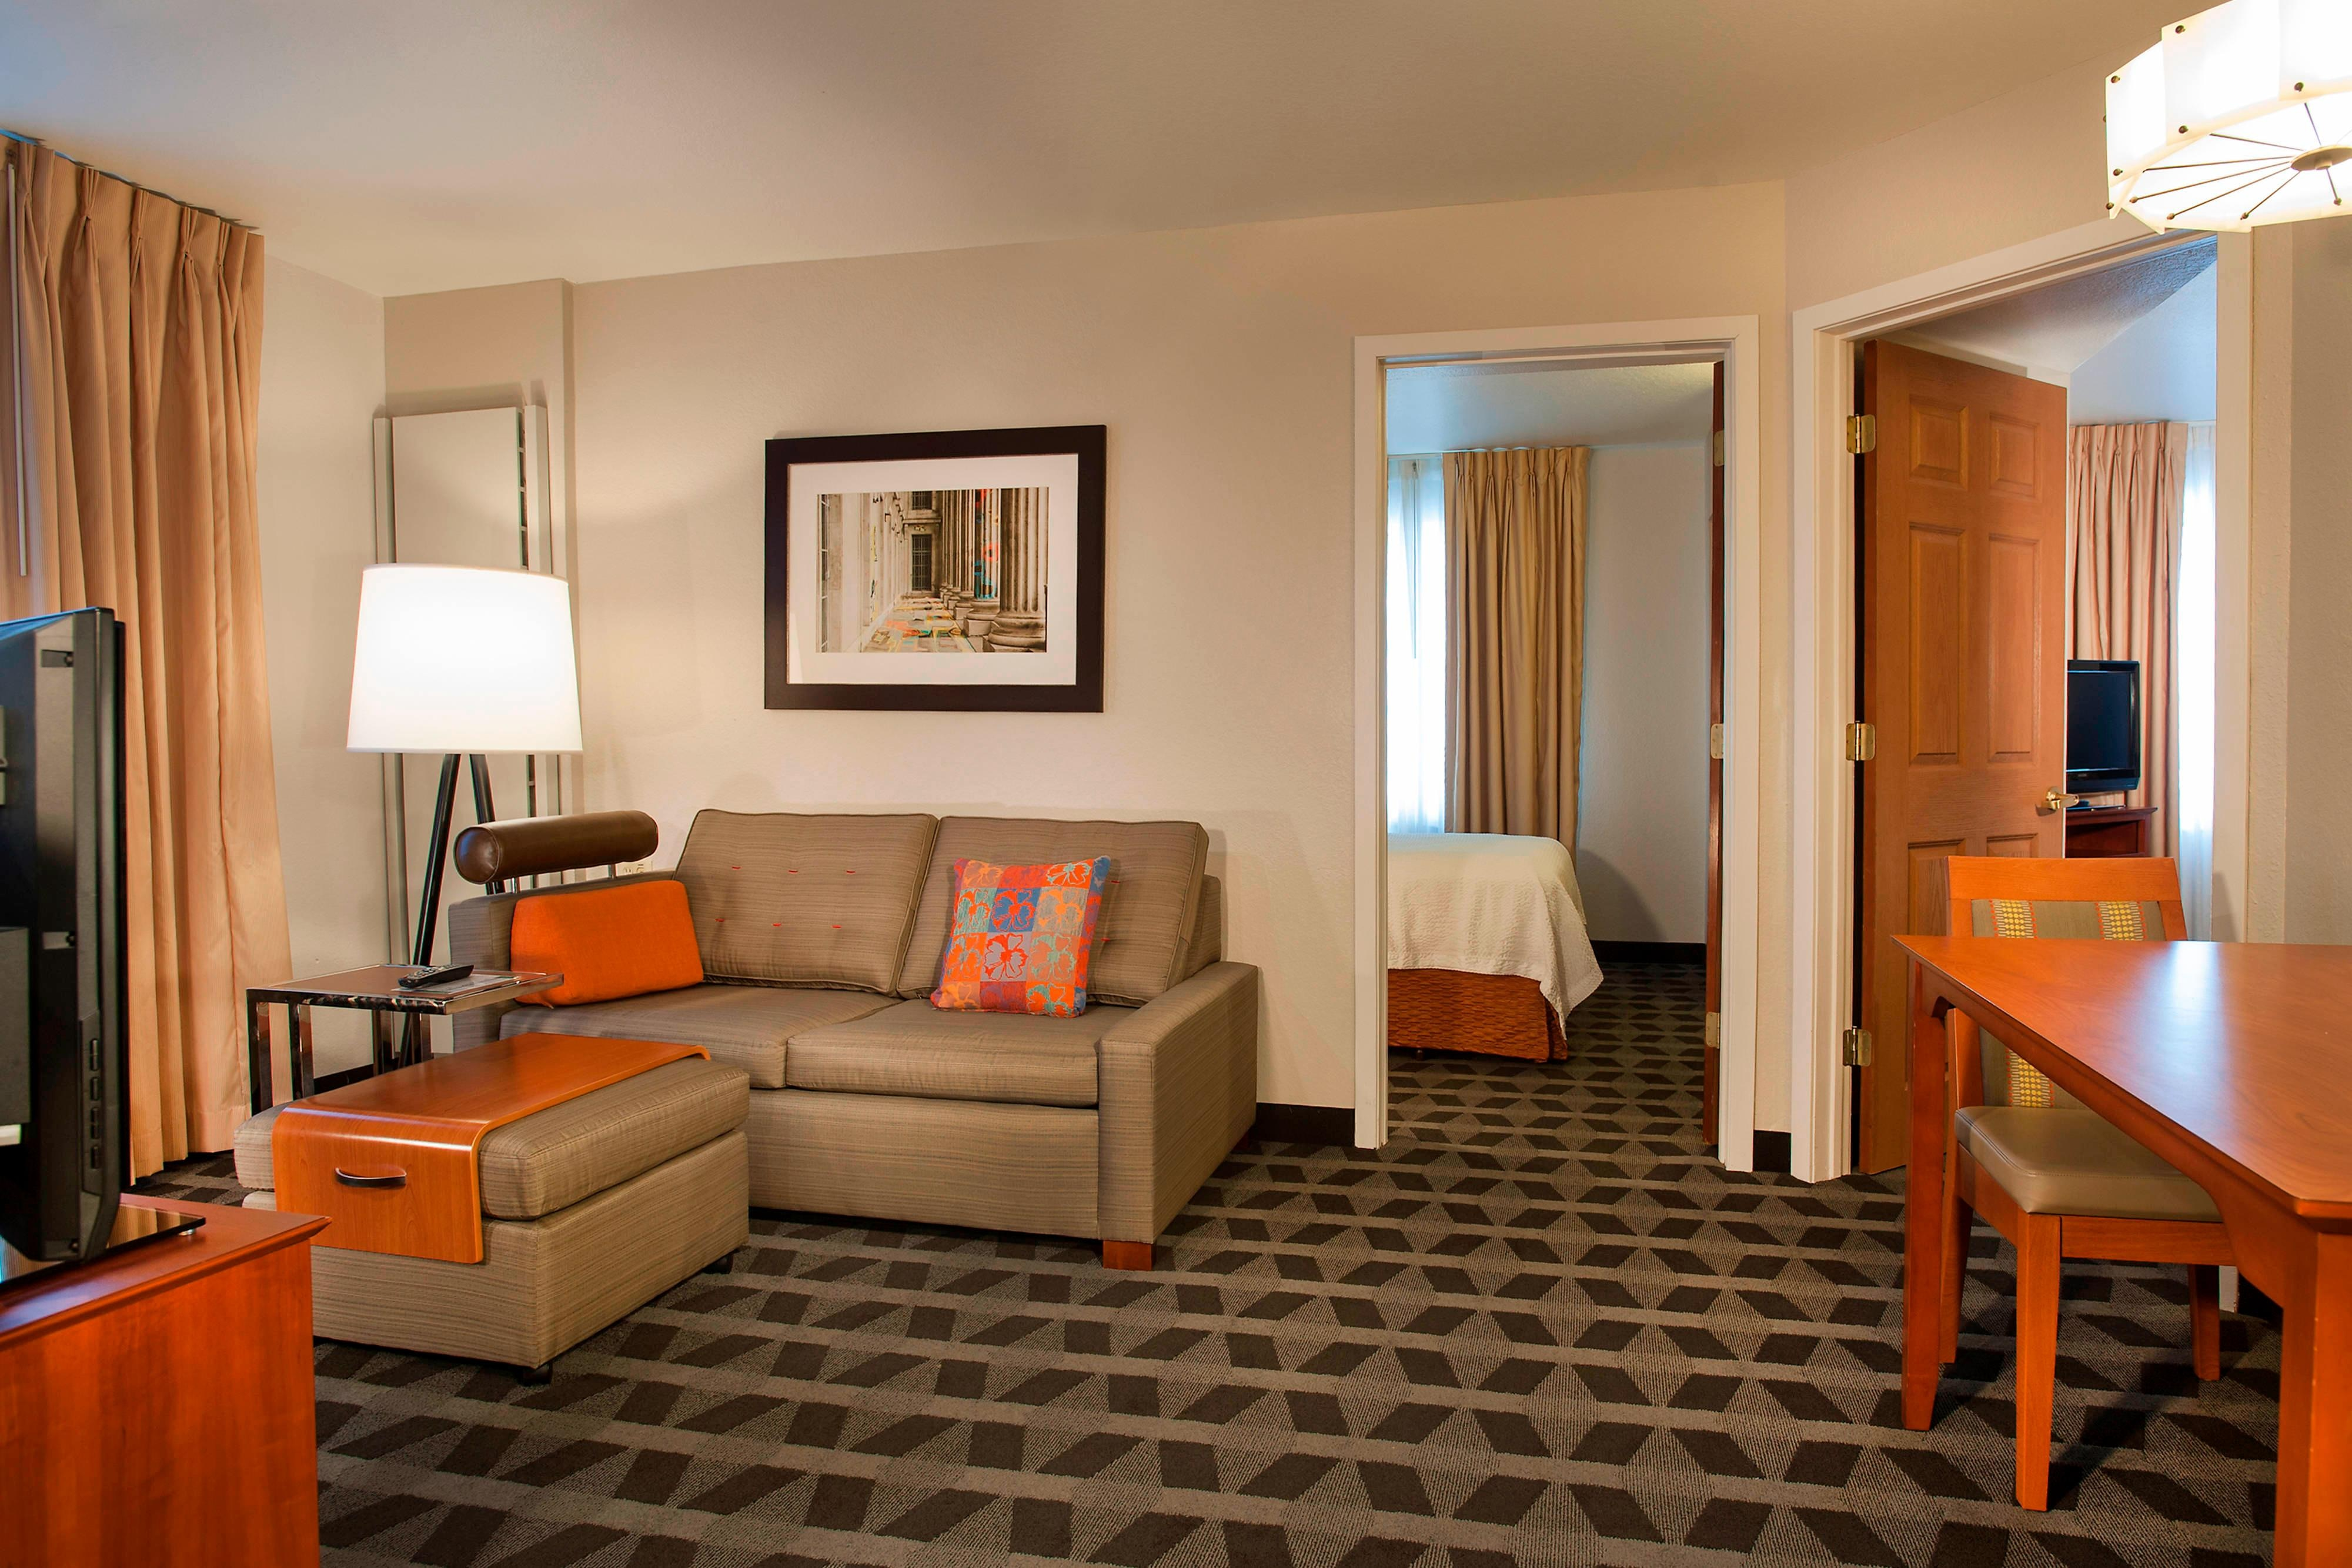 Northern Virginia Hotel Towneplace Suites Dulles Airport An All Suites Hotel Near Washington